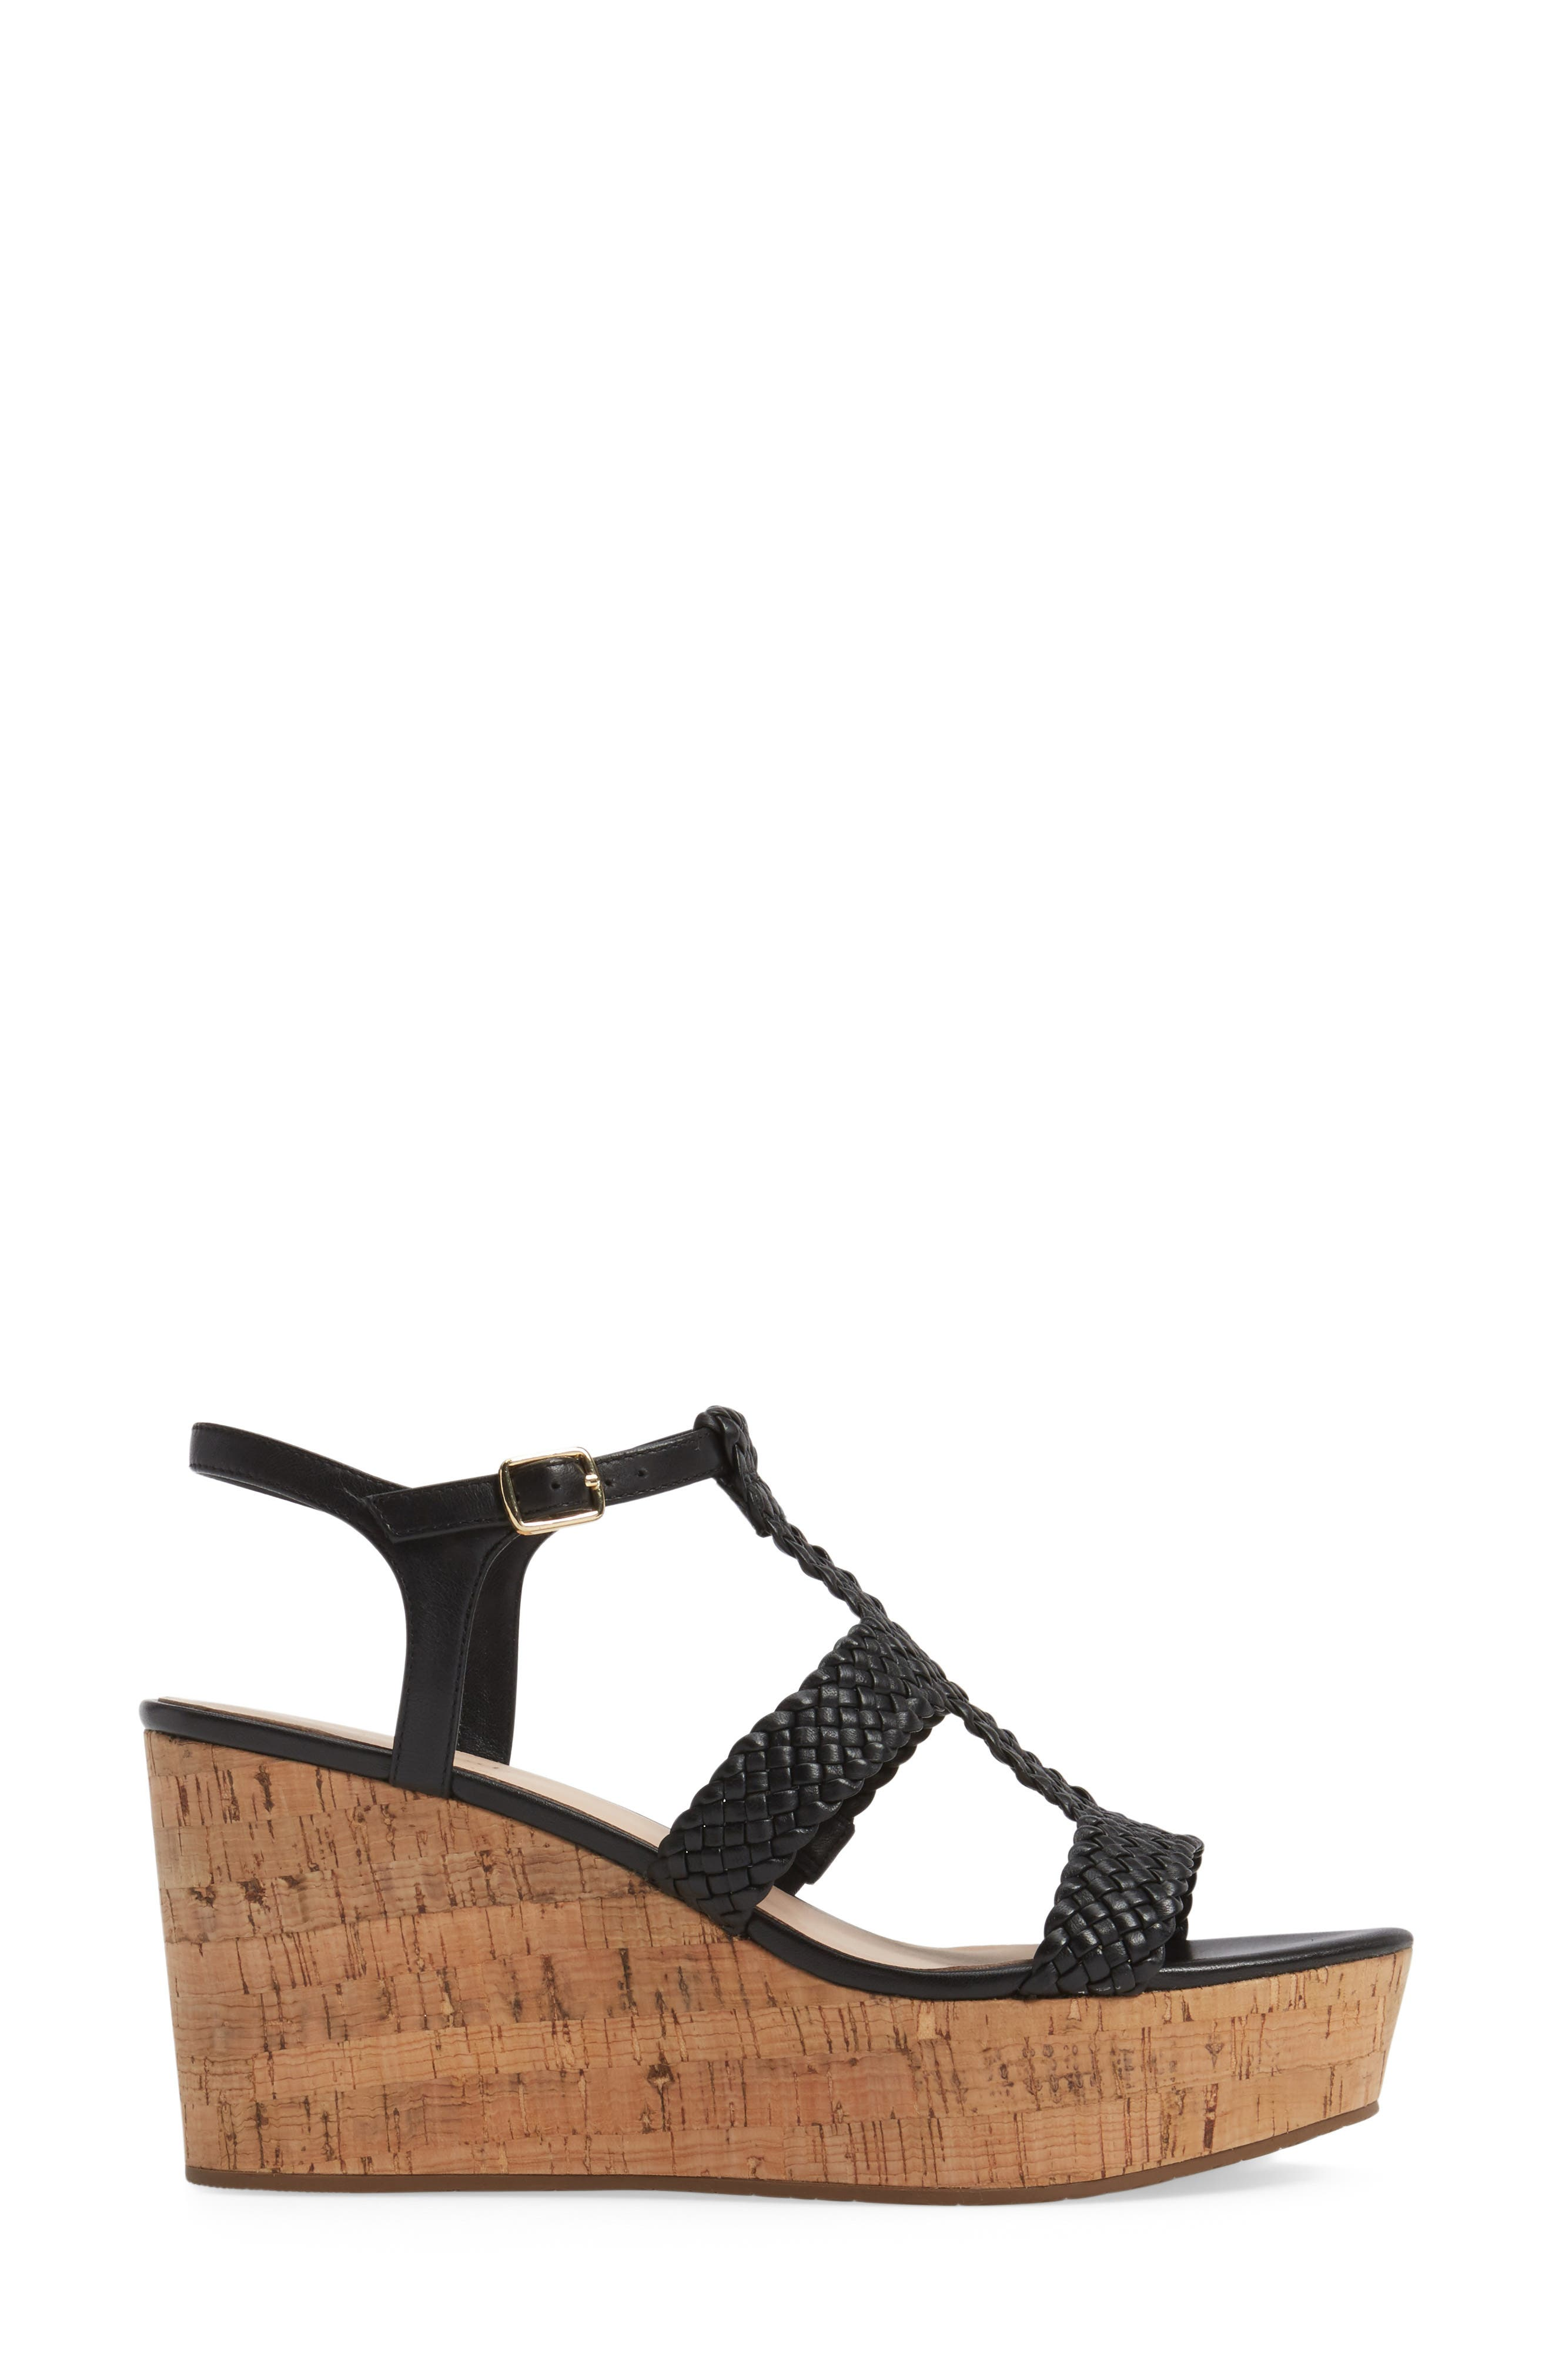 KATE SPADE NEW YORK, tianna platform sandal, Alternate thumbnail 3, color, 001